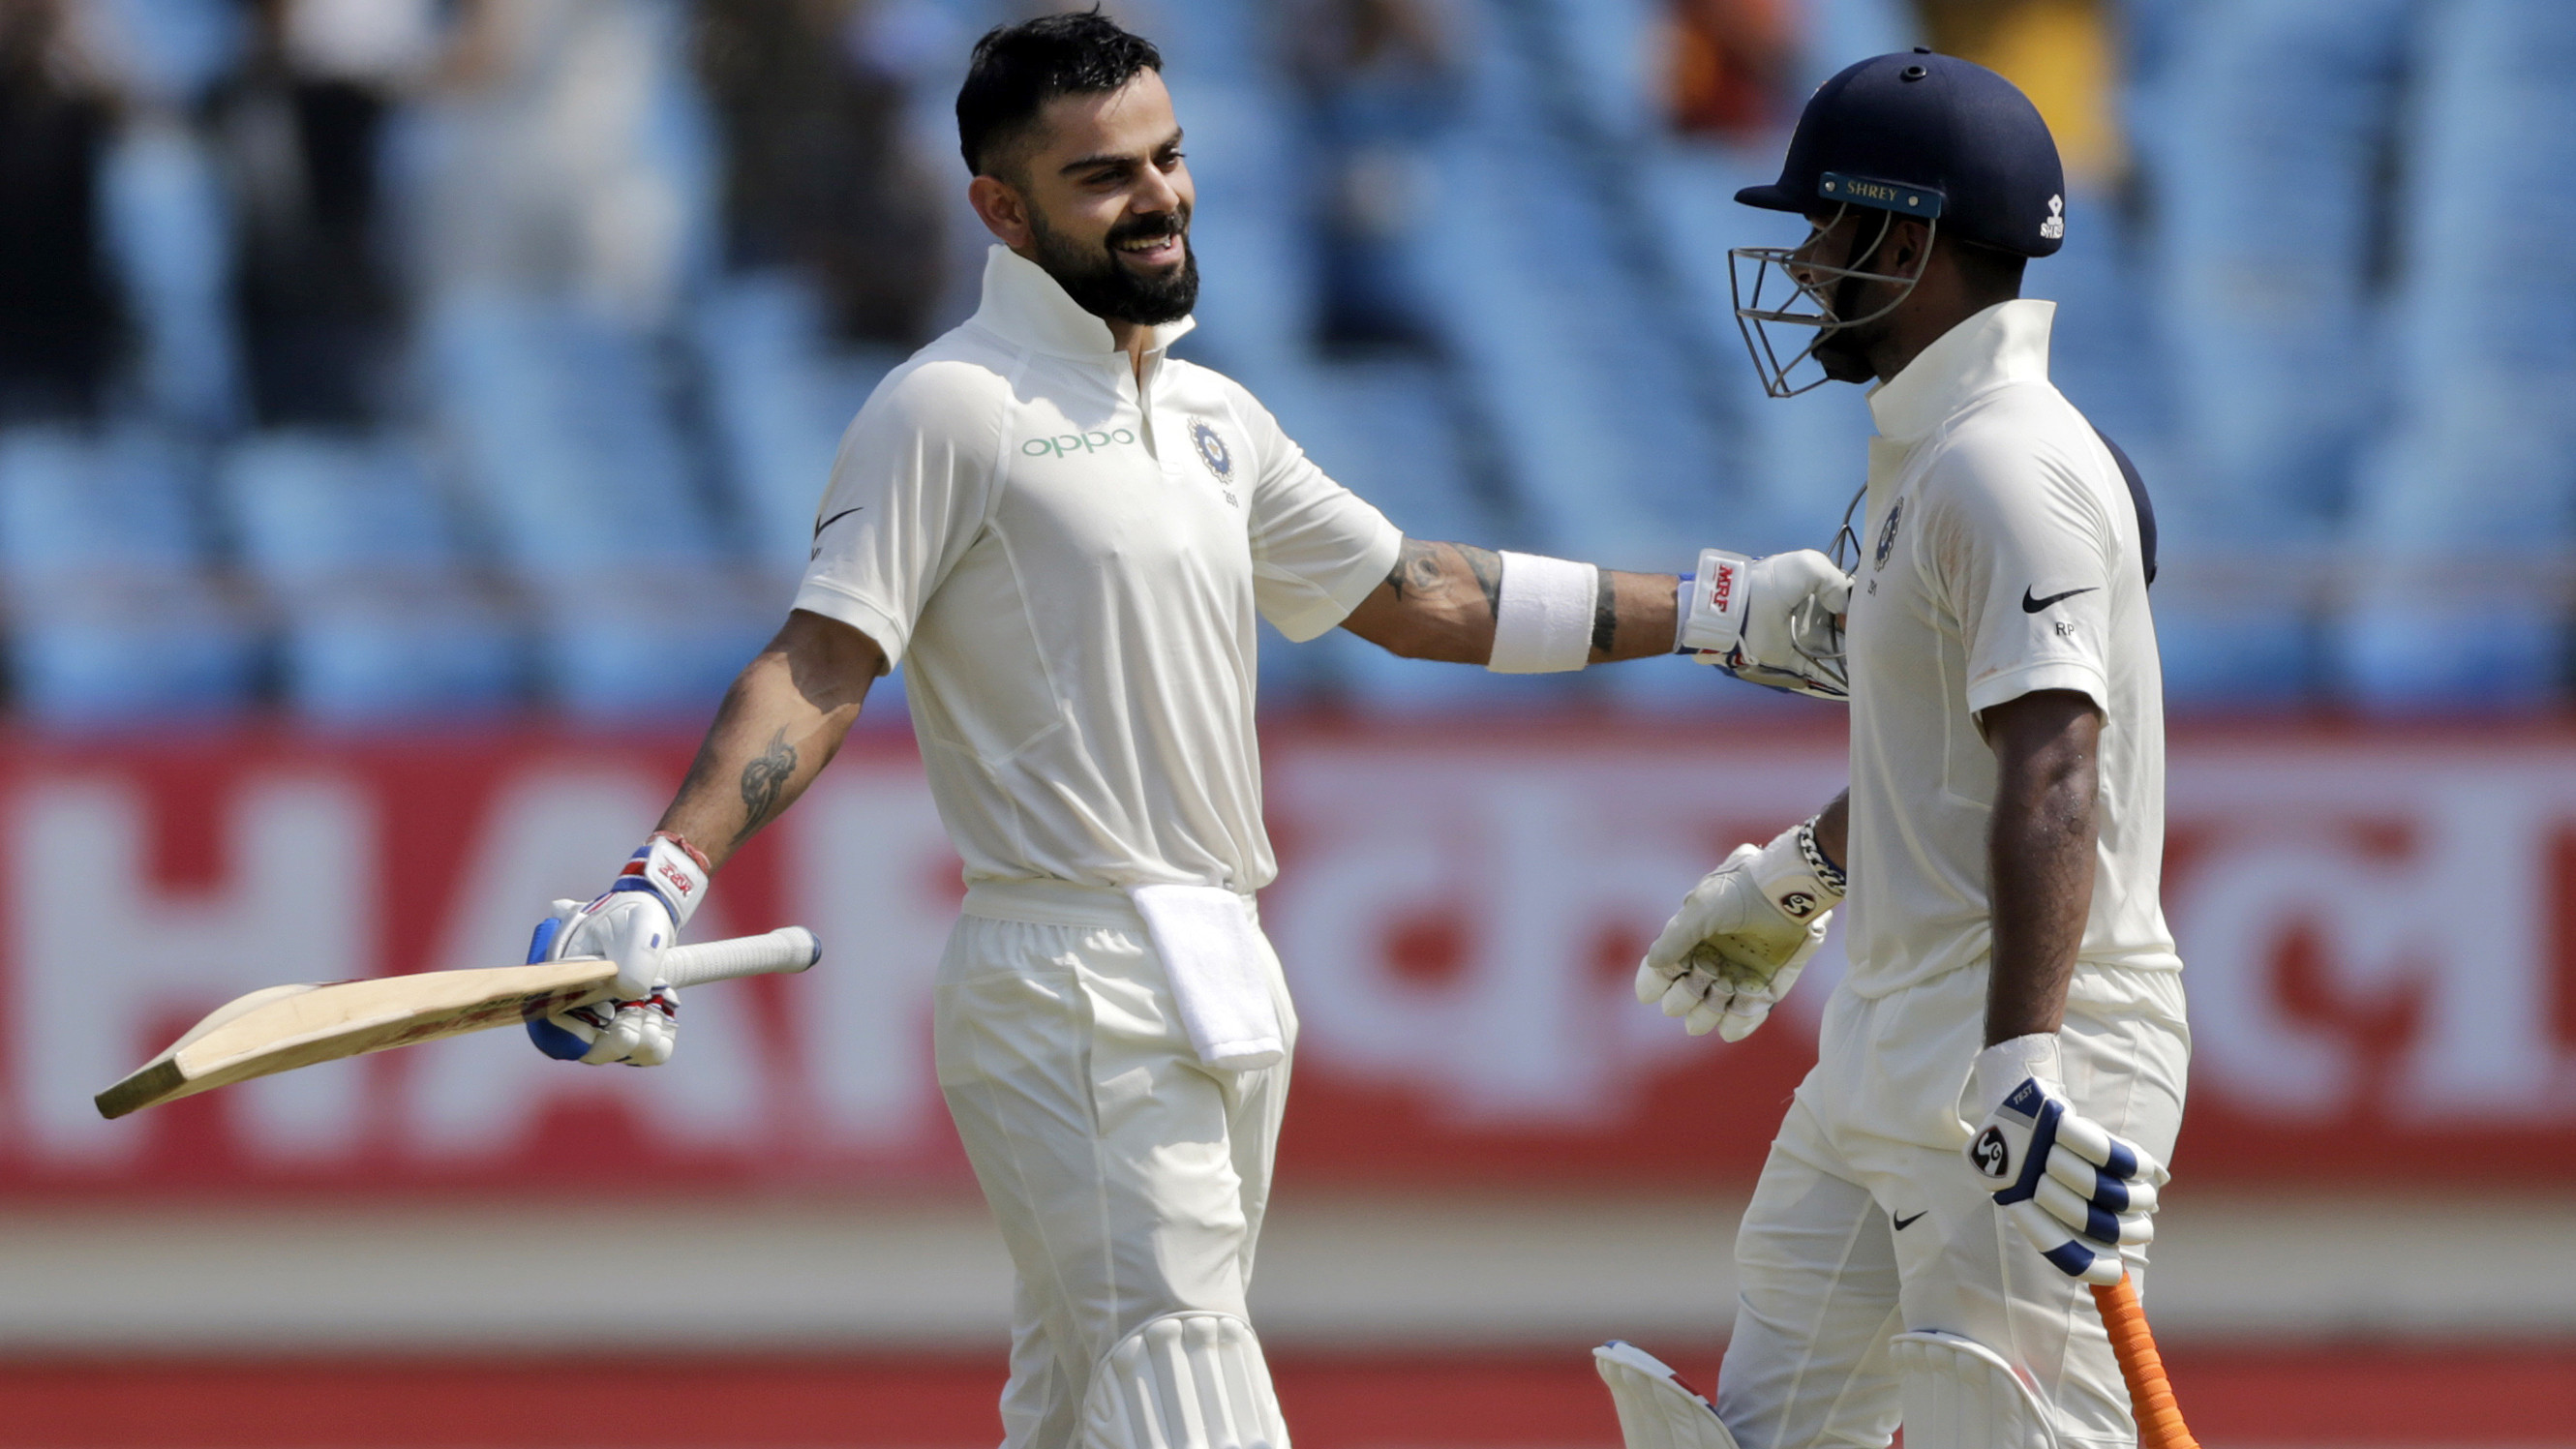 IND v WI 2018: Virat Kohli delighted with the clinical performance of his troops